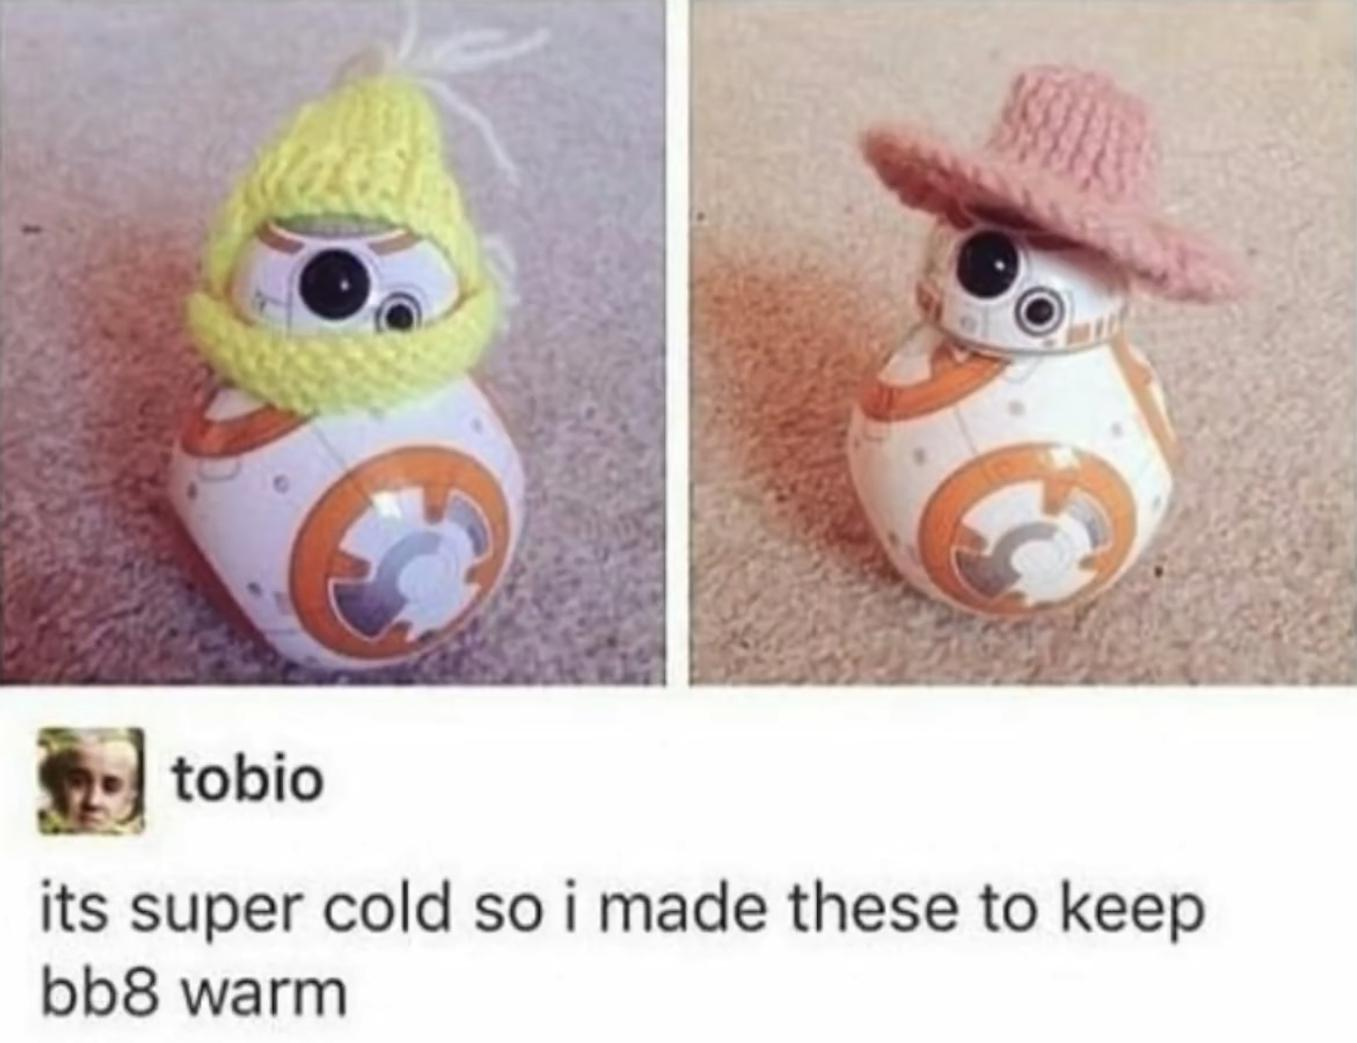 bb8 looks adorable